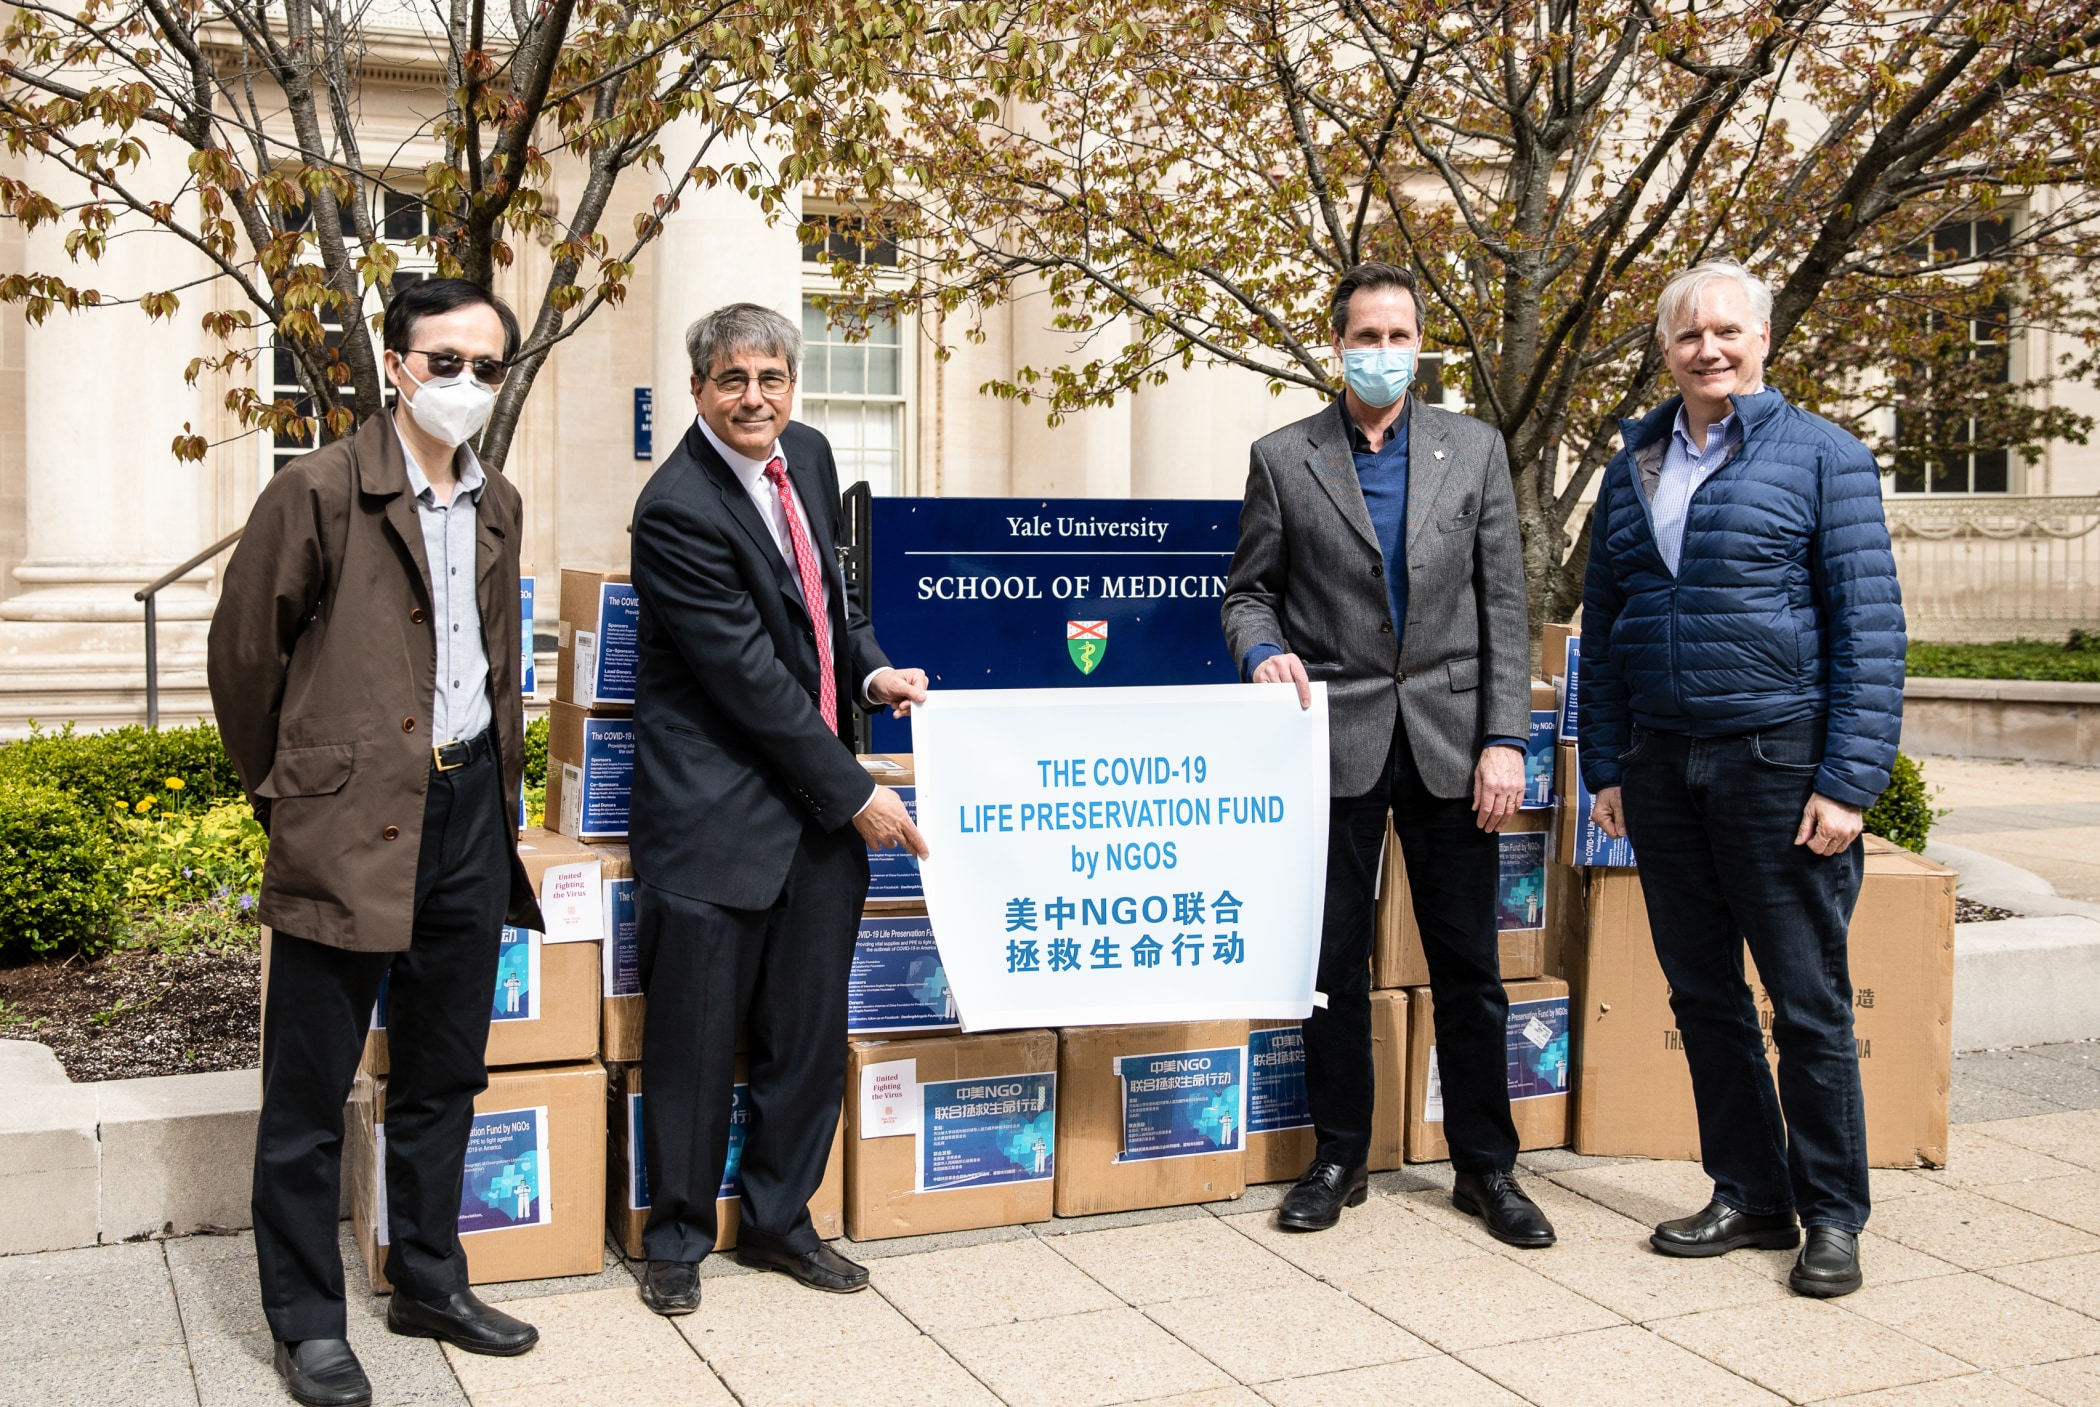 Yale Receives Delivery of N95 Masks From Chinese NGOs